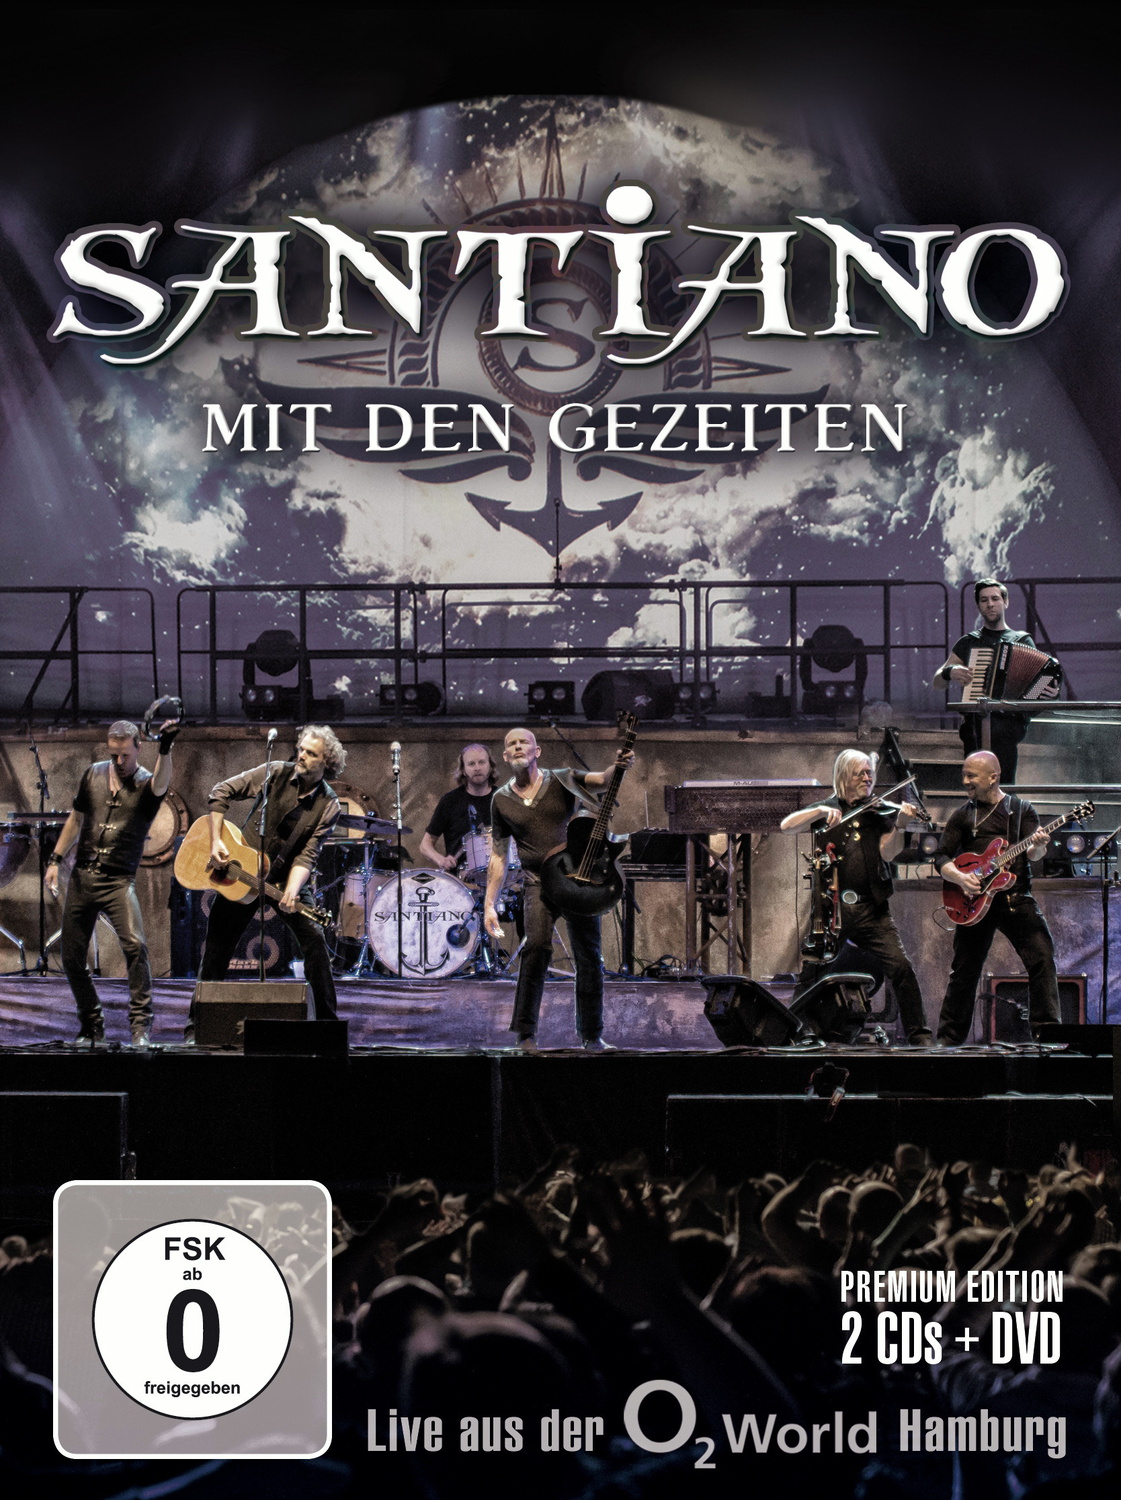 Santiano - Mit den Gezeiten - Live aus der o2 World Hamburg (Limited CD+DVD Edition)